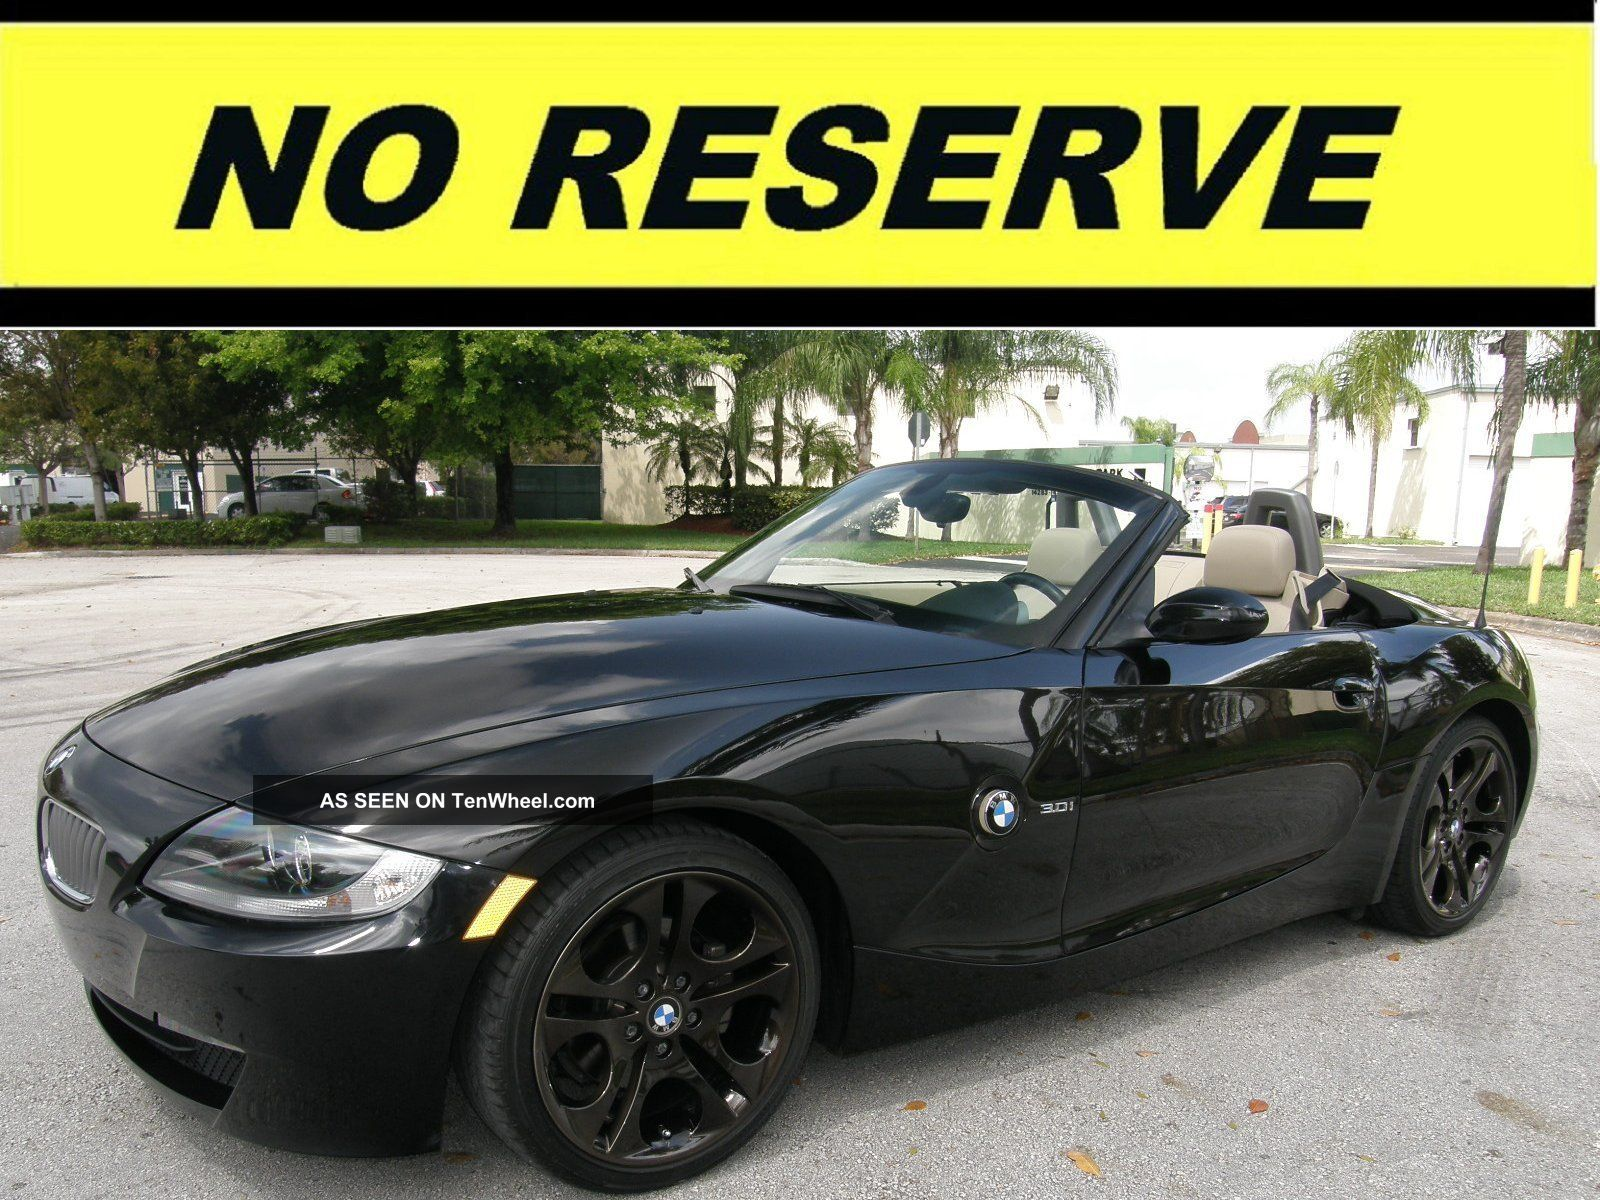 2006 Bmw Z4 Convertible, ,  18inch Rims,  Power Top,  Under Z4 photo